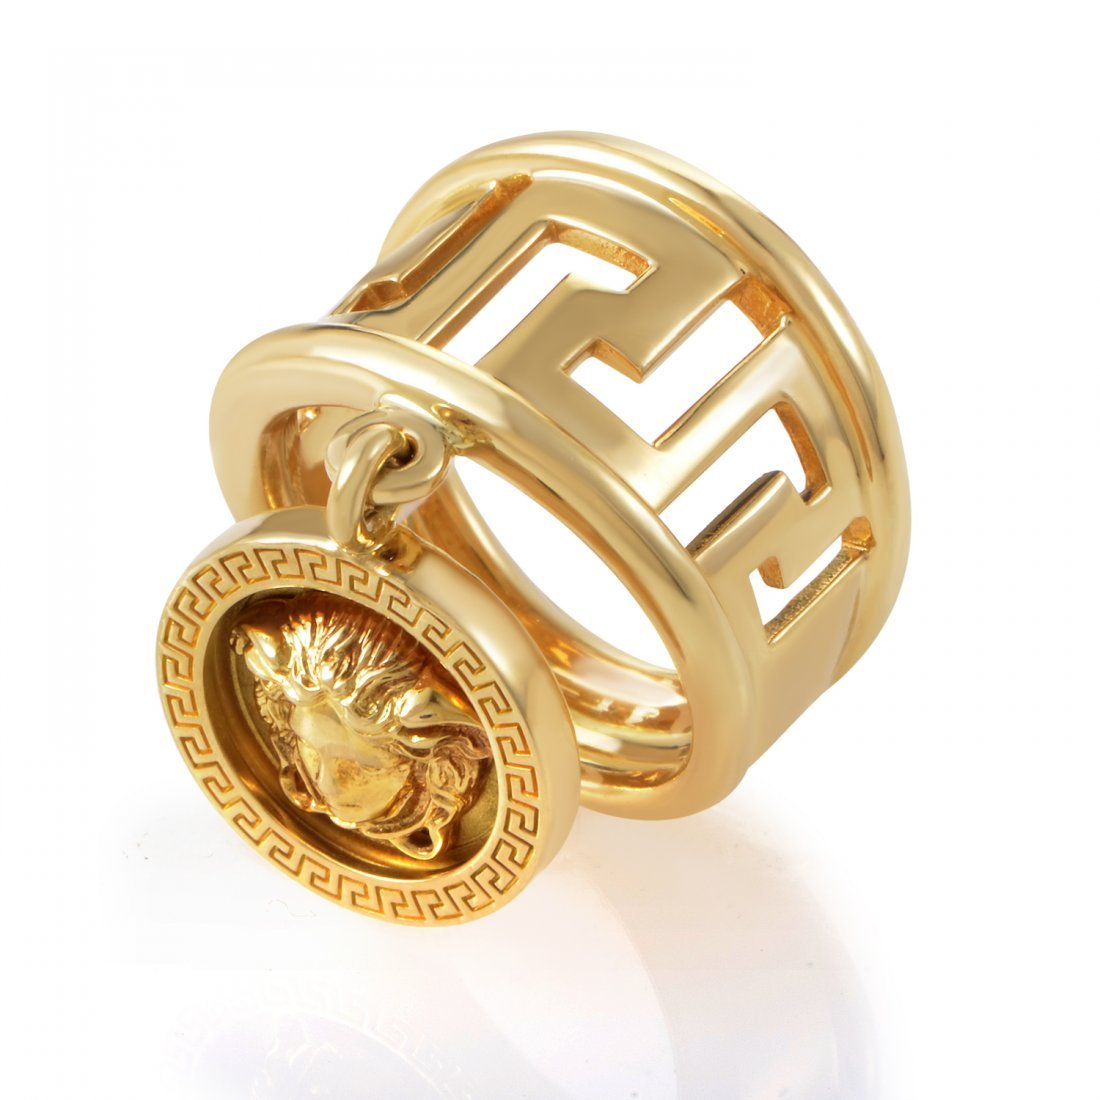 Versace 18K Yellow Gold Medusa Head Charm Ring  The